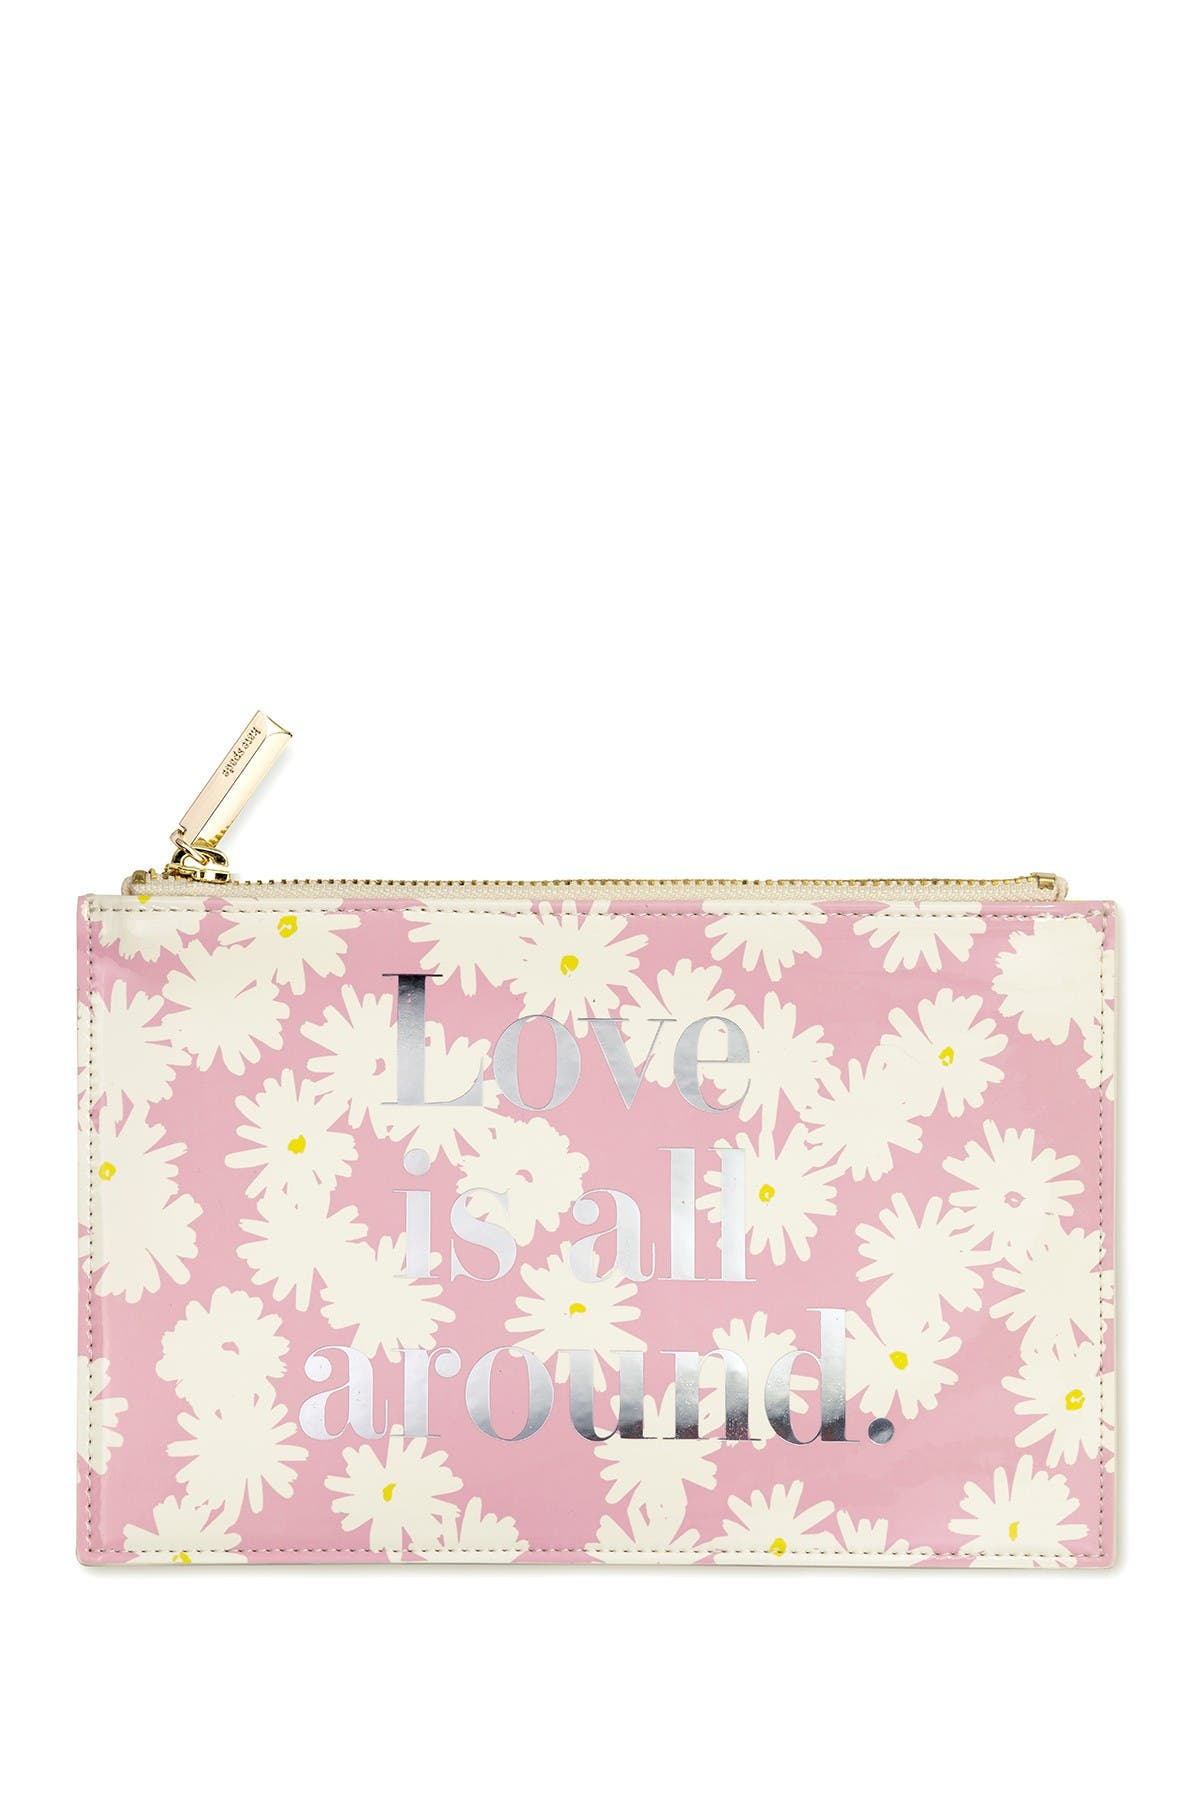 Image of kate spade new york bridal pencil pouch, love is all around